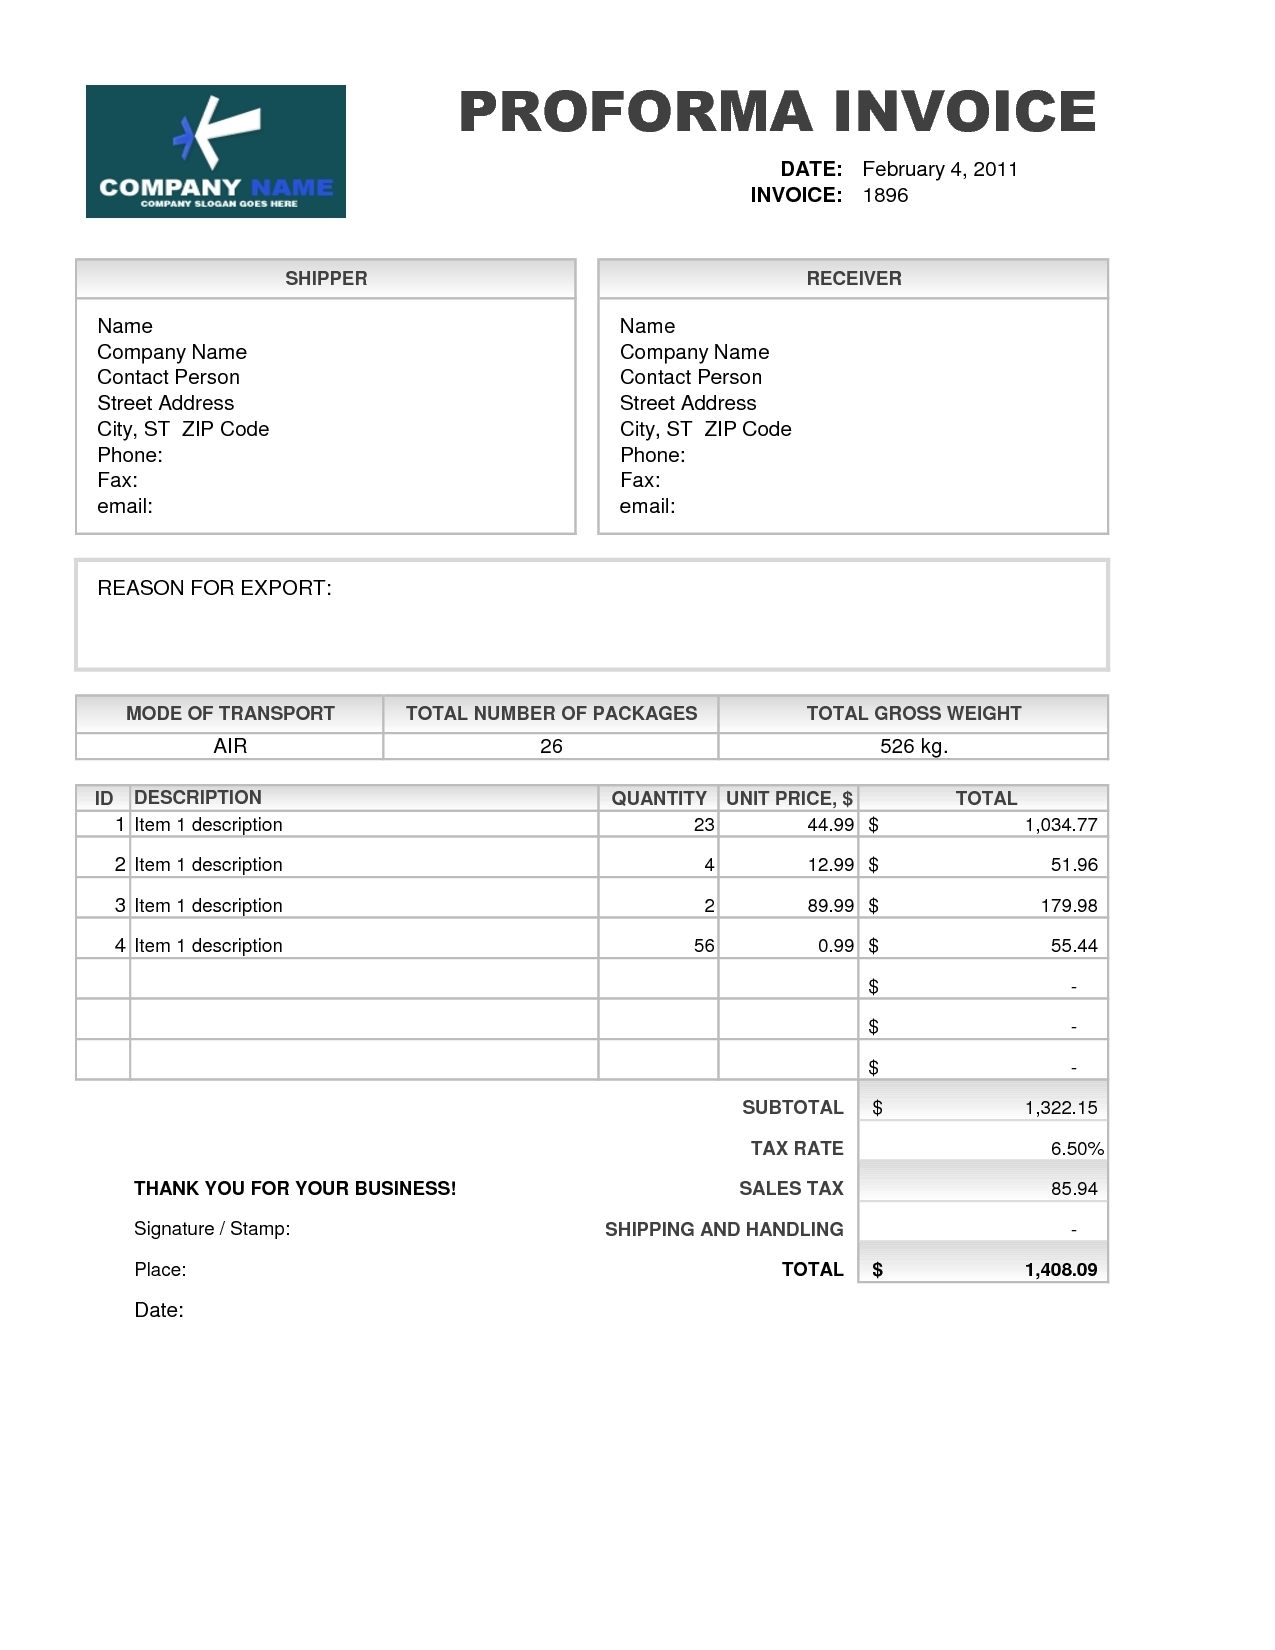 samples of proforma invoice invoice template free 2016 sample proforma invoice